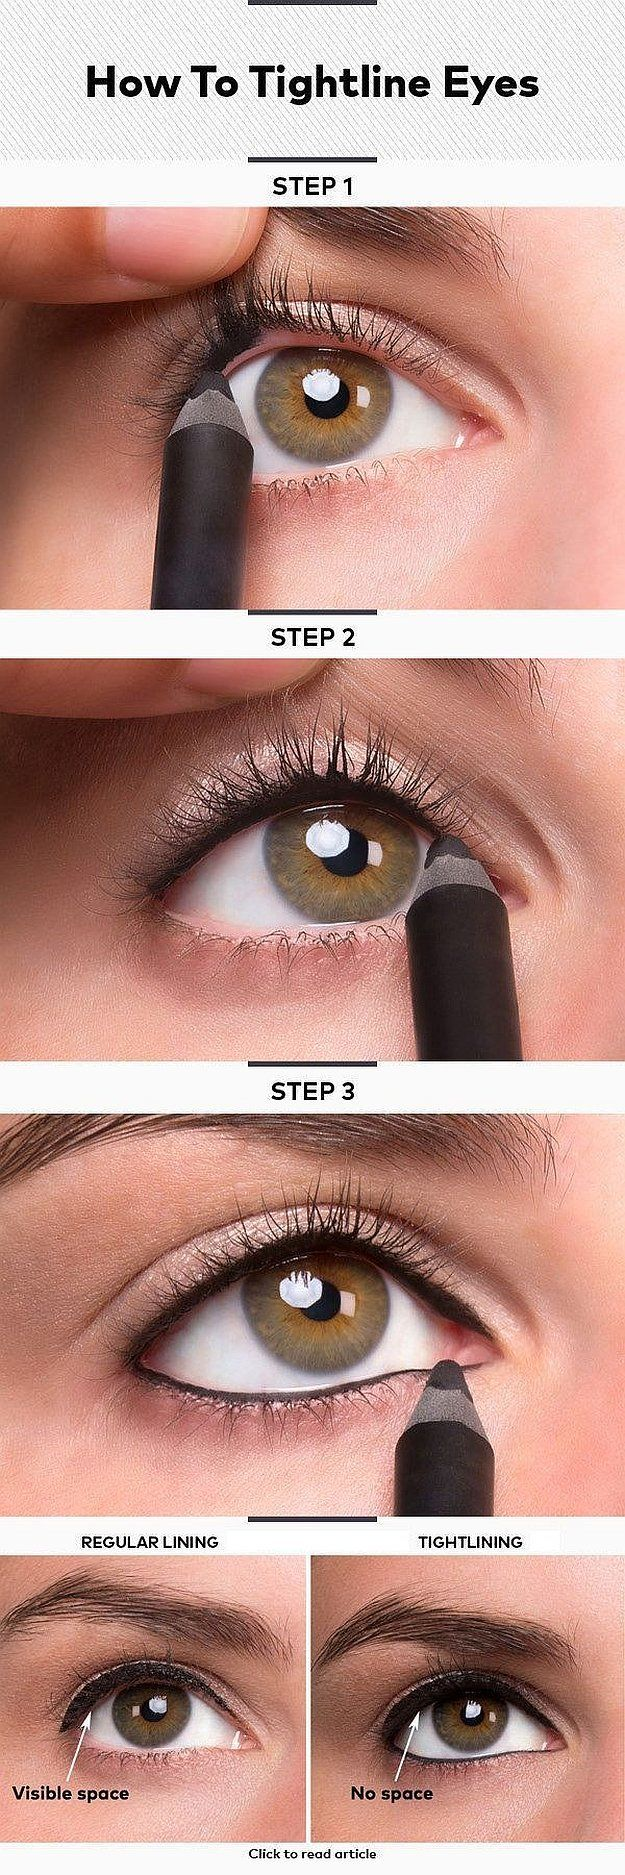 Tightlining 101: Make Your Eyes Bigger & Lashes Thicker, check it out at http://makeuptutorials.com/tightlining-makeup-tutorials/